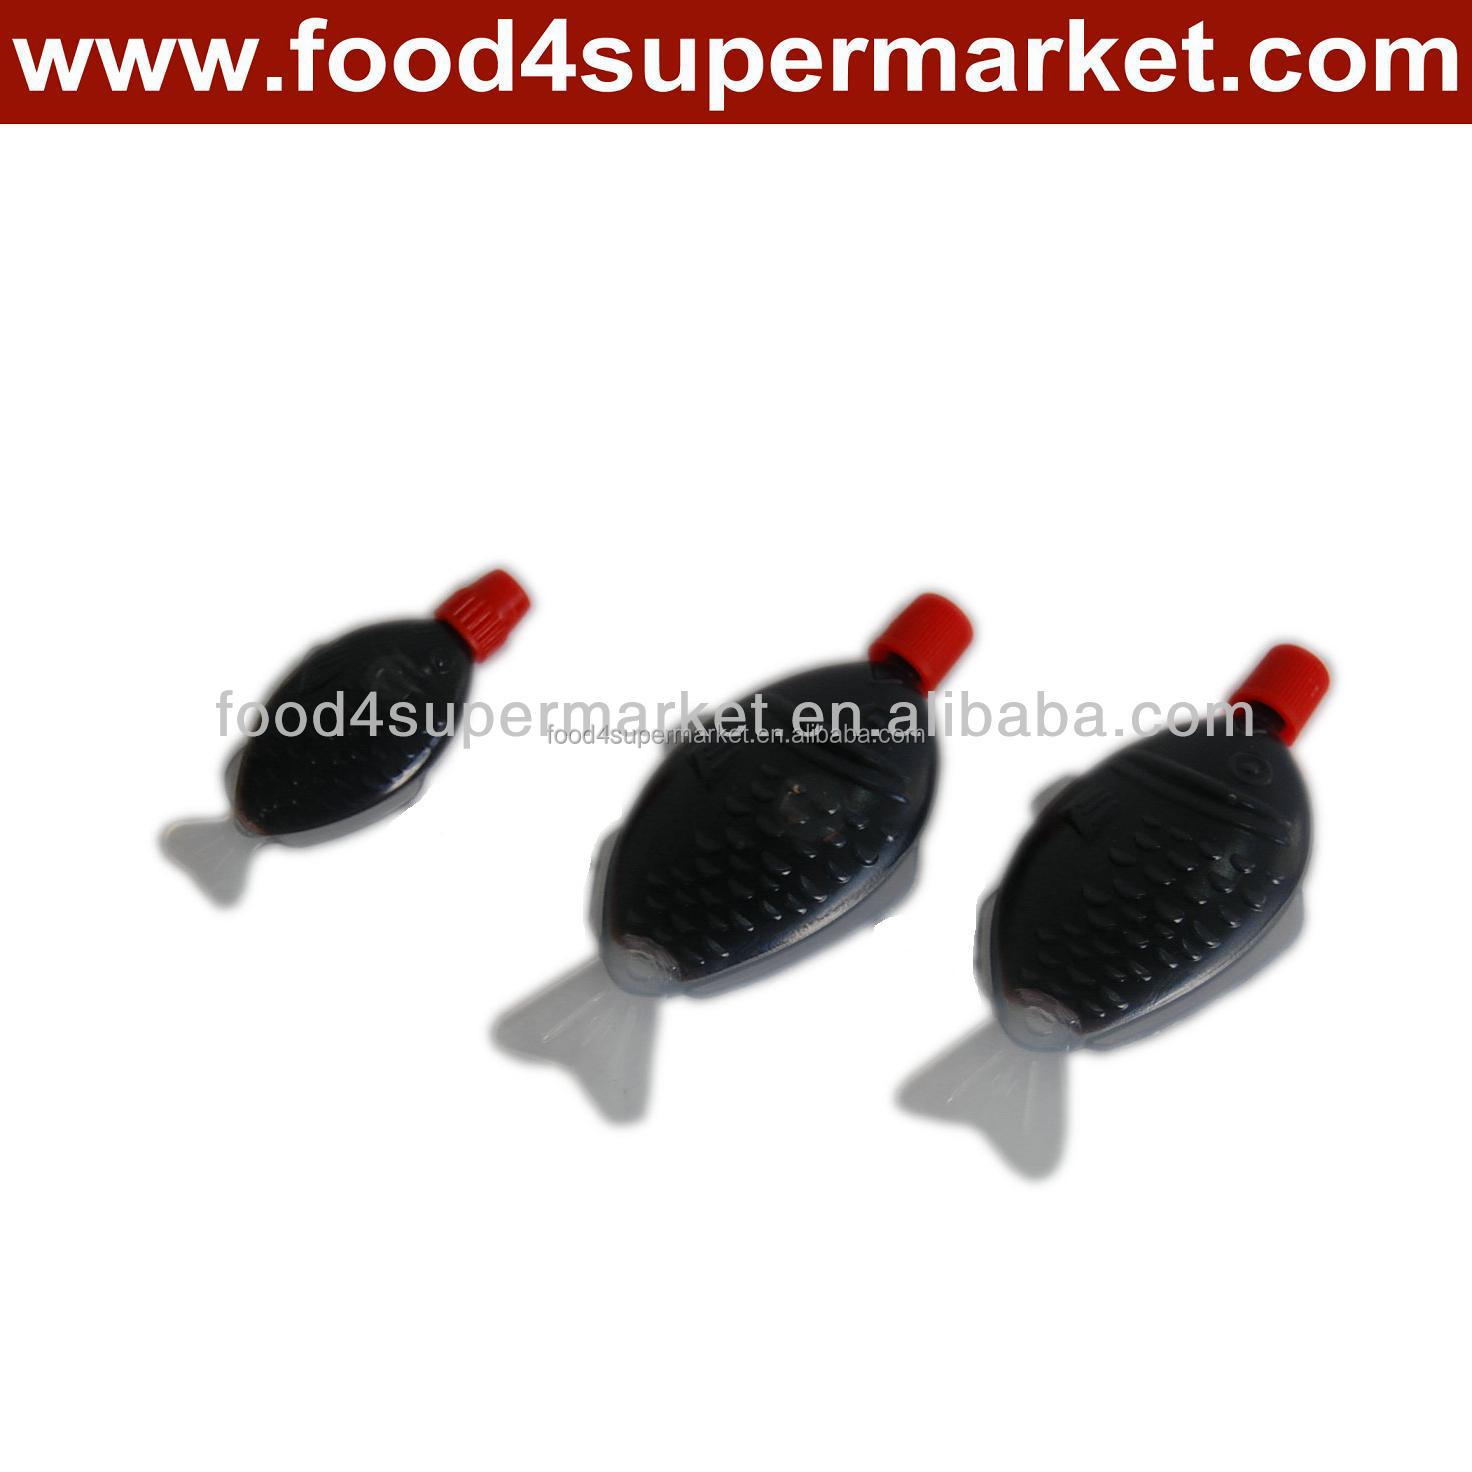 Fish Pot best selling samll sachet Soy Sauce